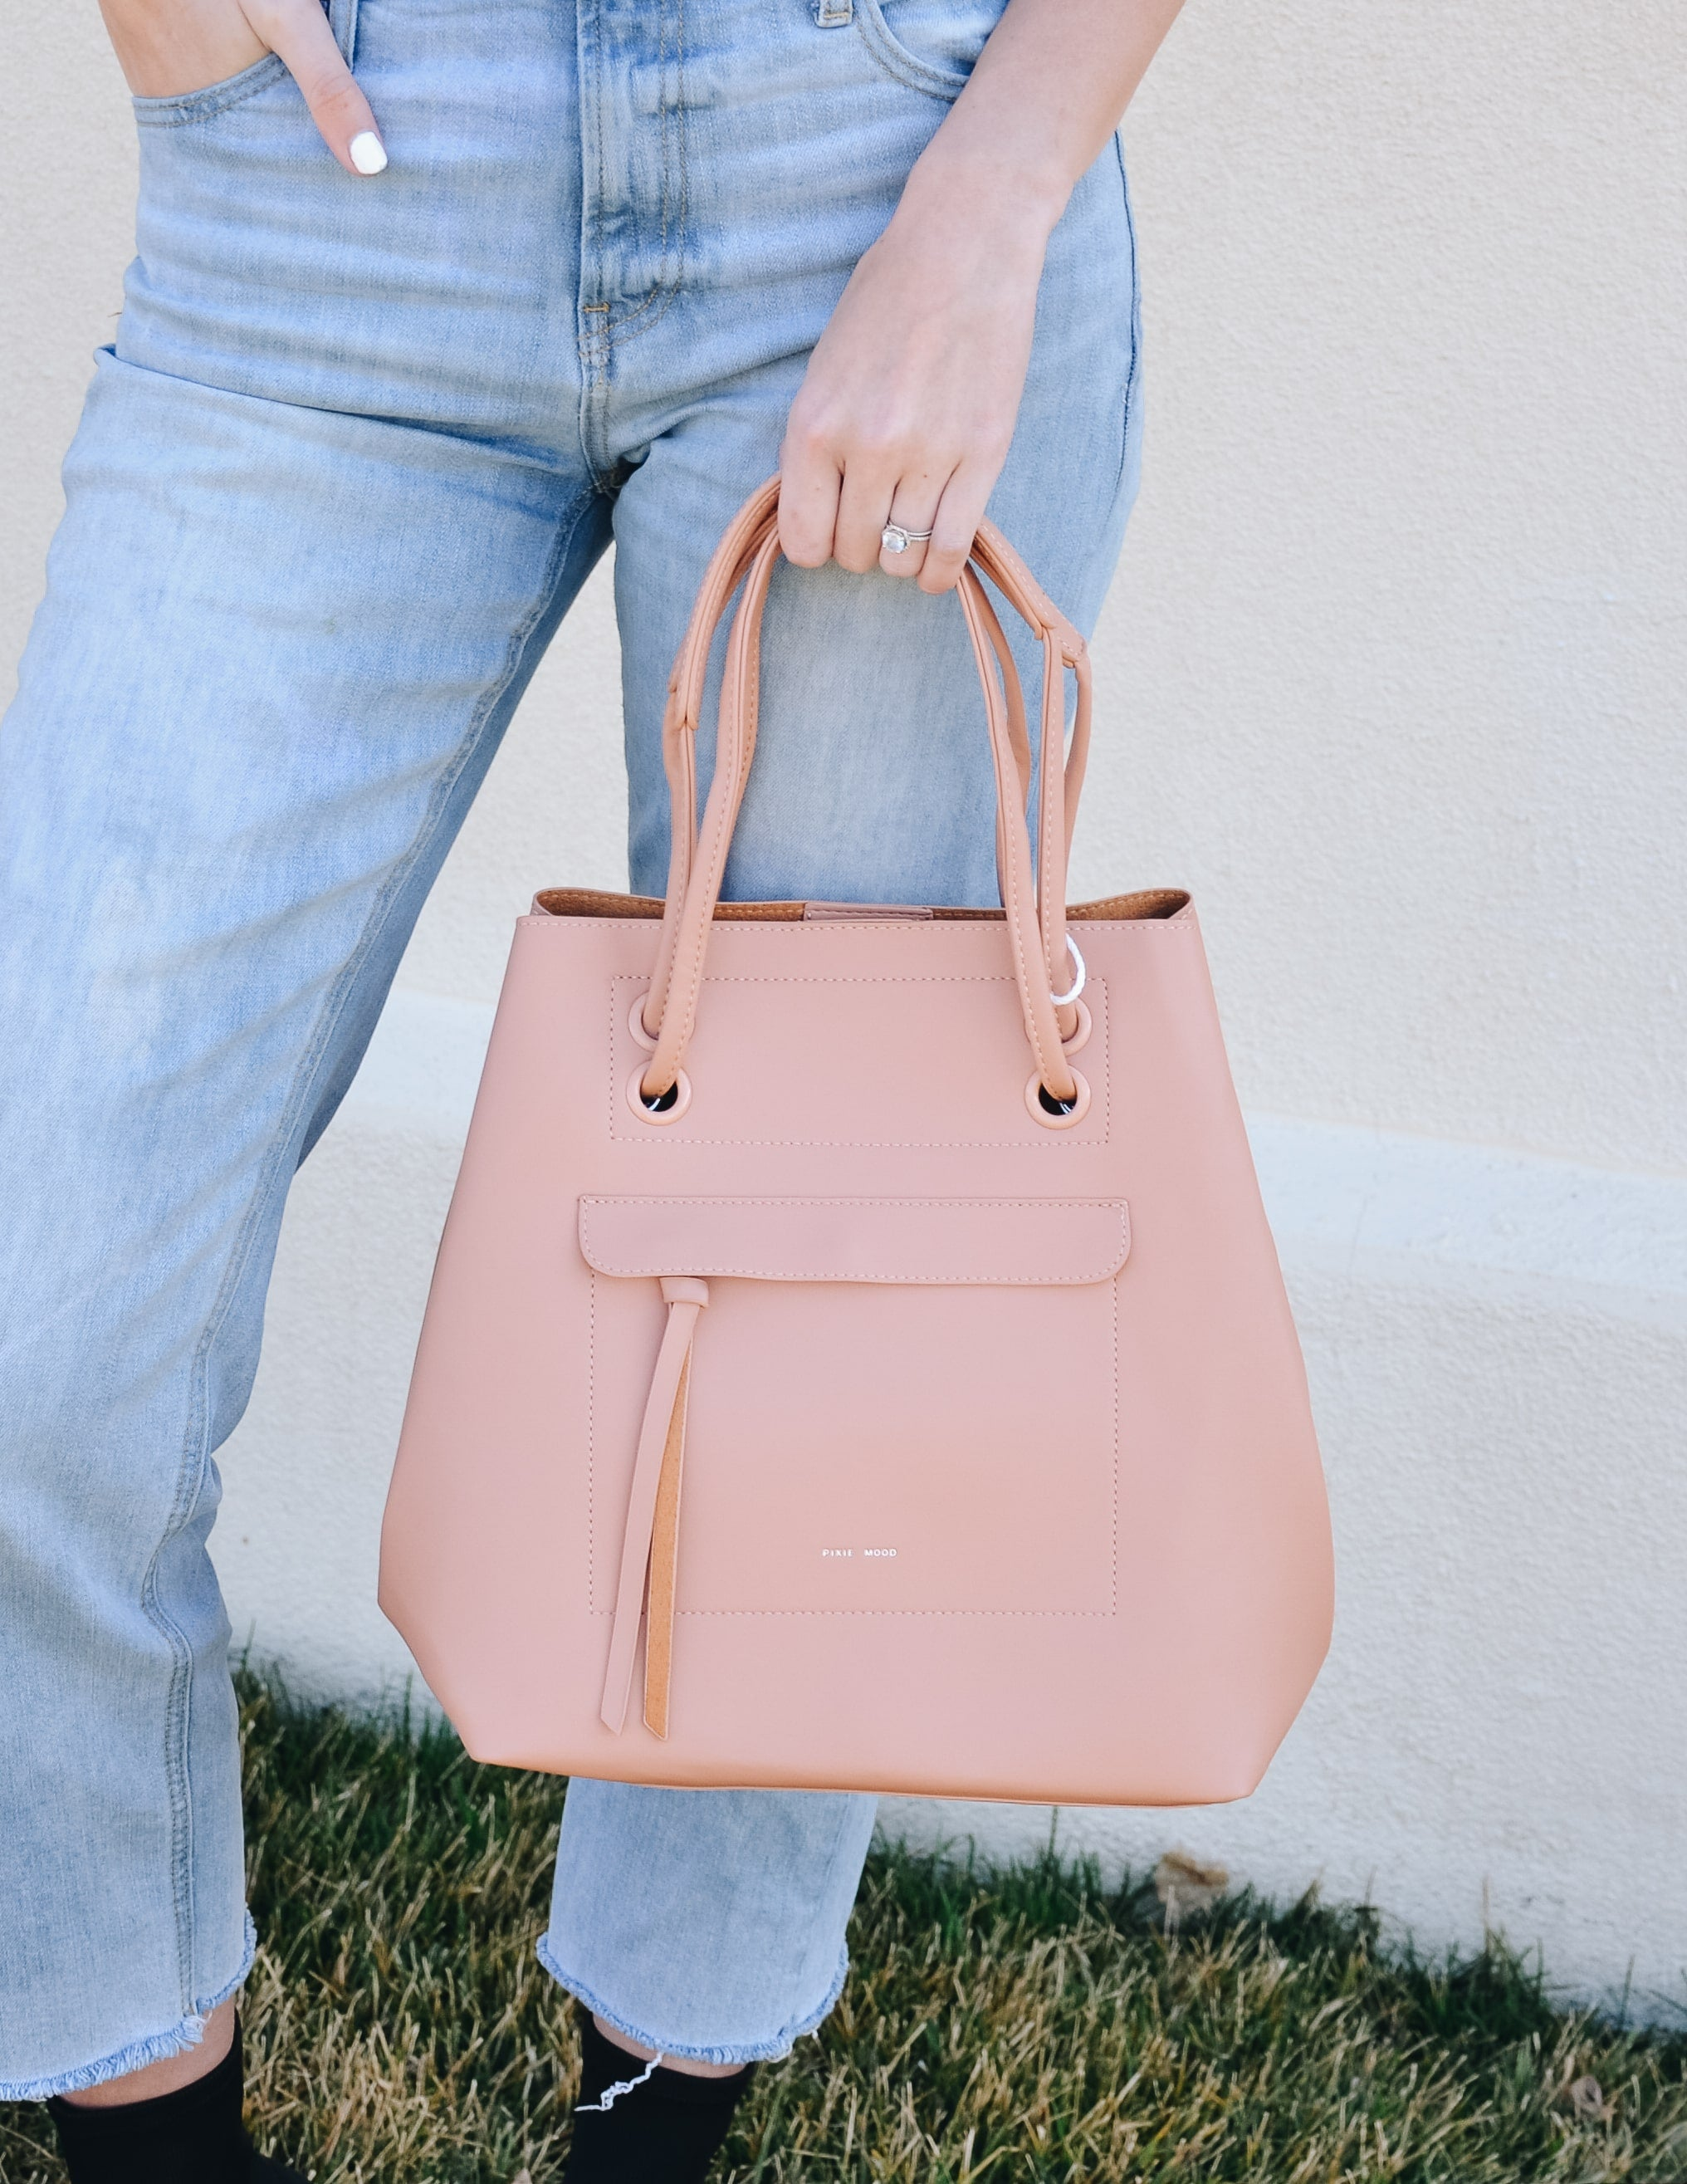 Apricot pixie mood molly bag with front pocket and slouchy shape